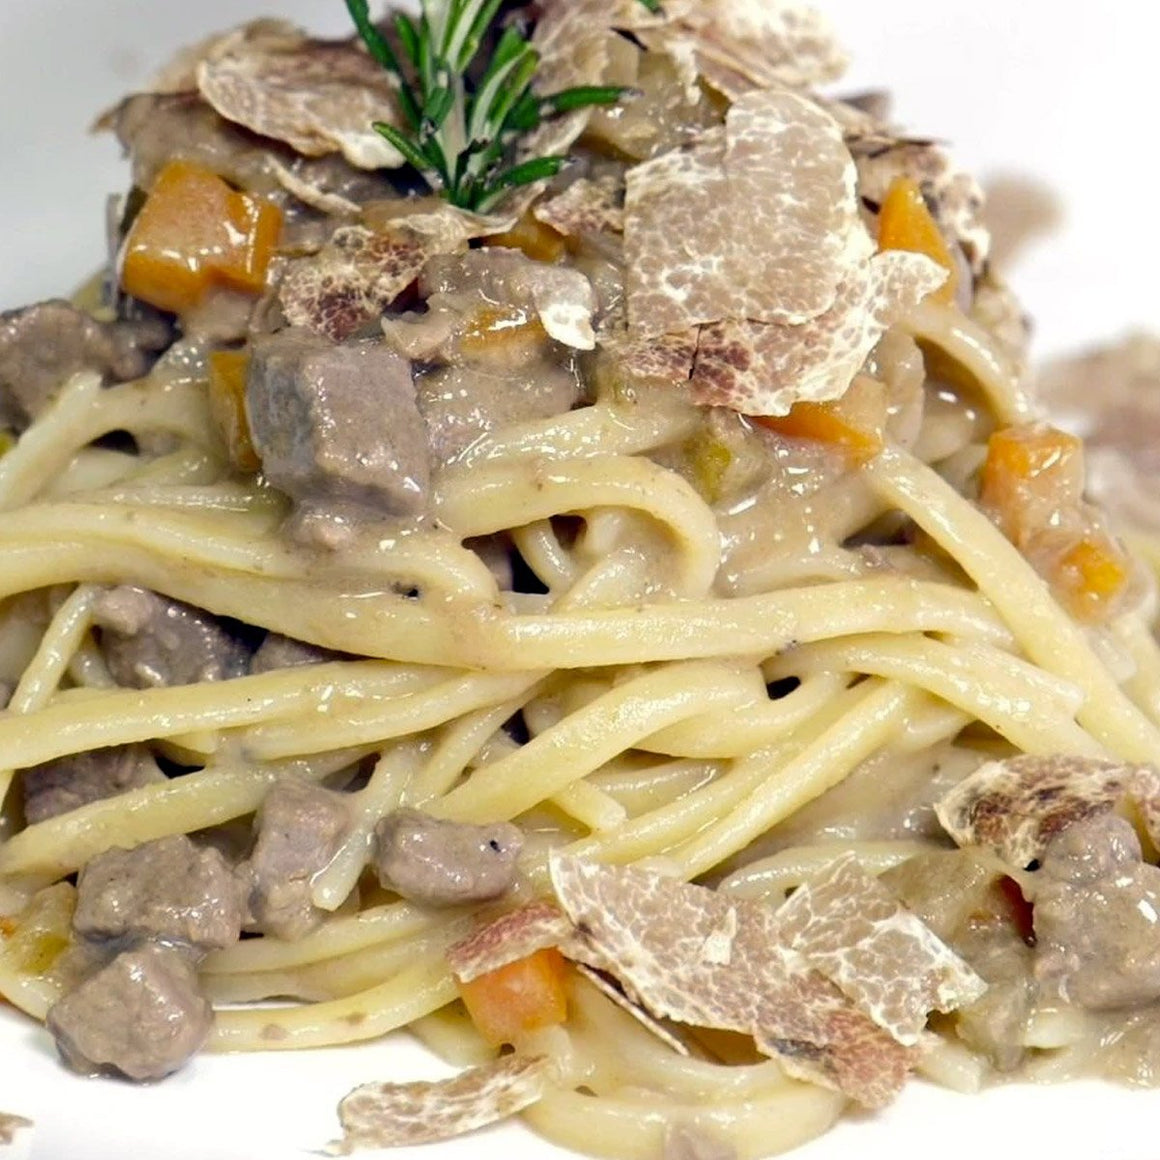 Whole White Truffle - Giuliano Tartufi - PepeGusto